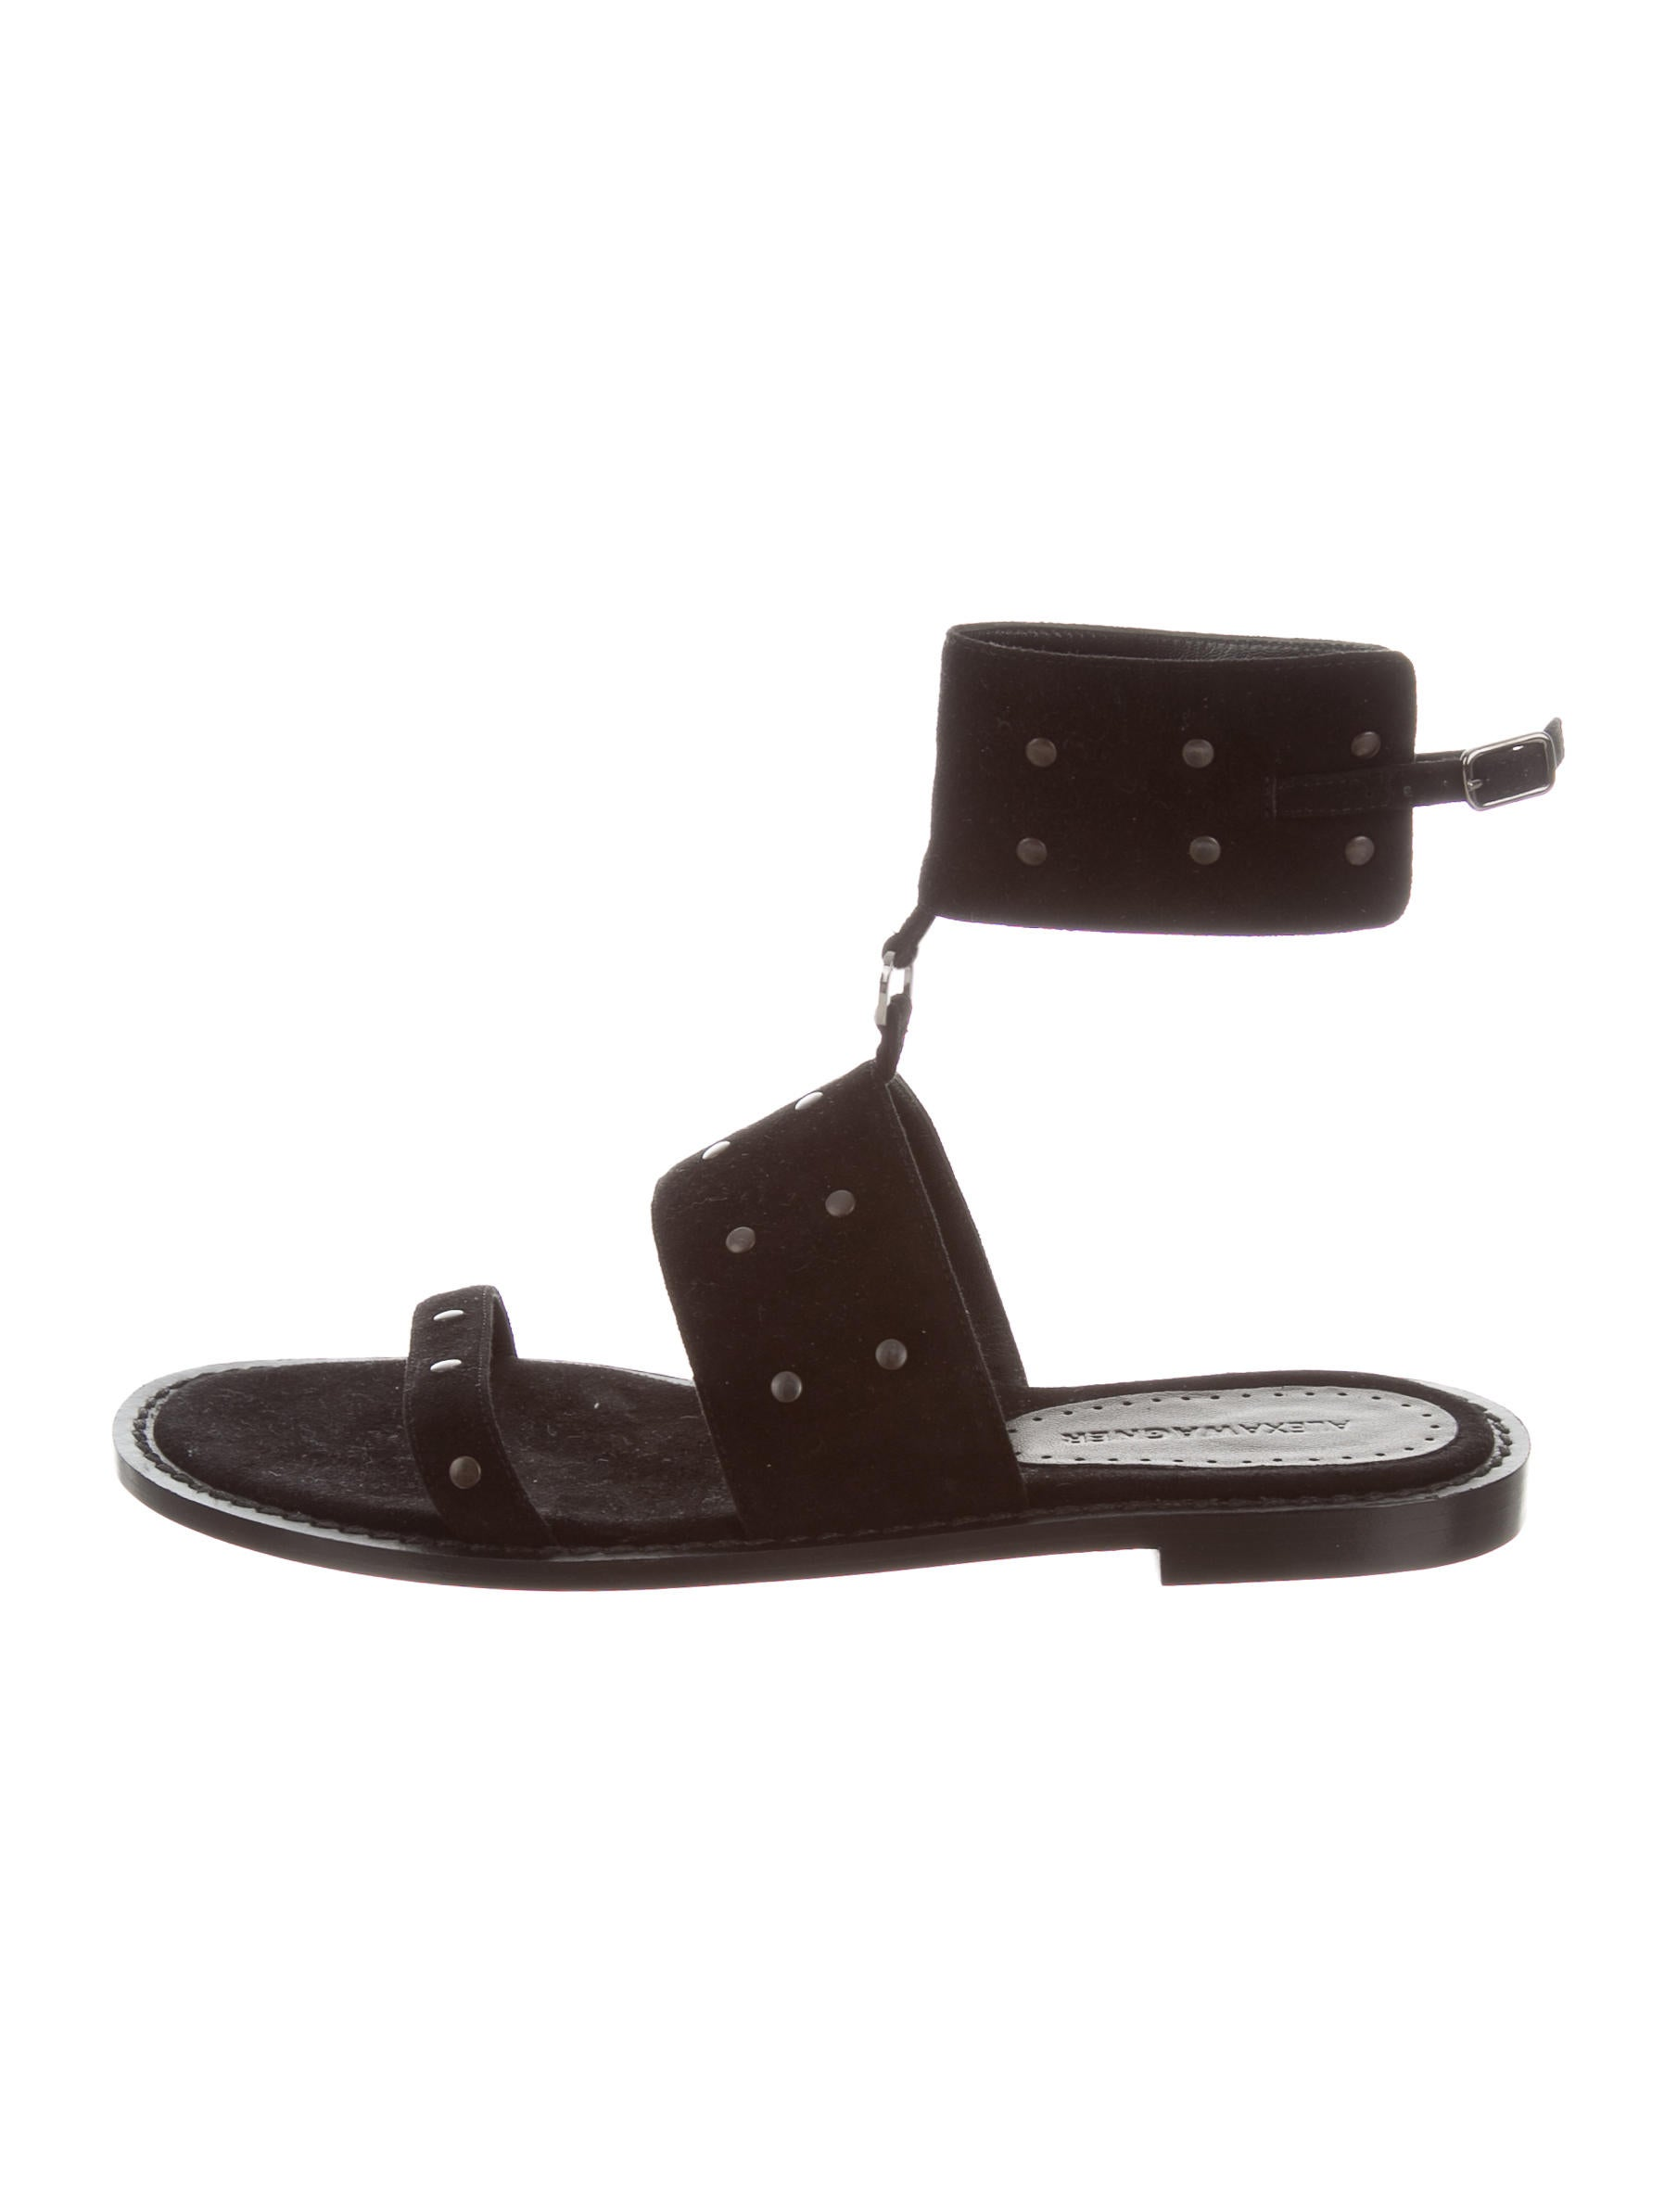 clearance authentic Alexa Wagner Fatima Studded Sandals w/ Tags sale supply buy cheap collections sale cheapest price RAnsO